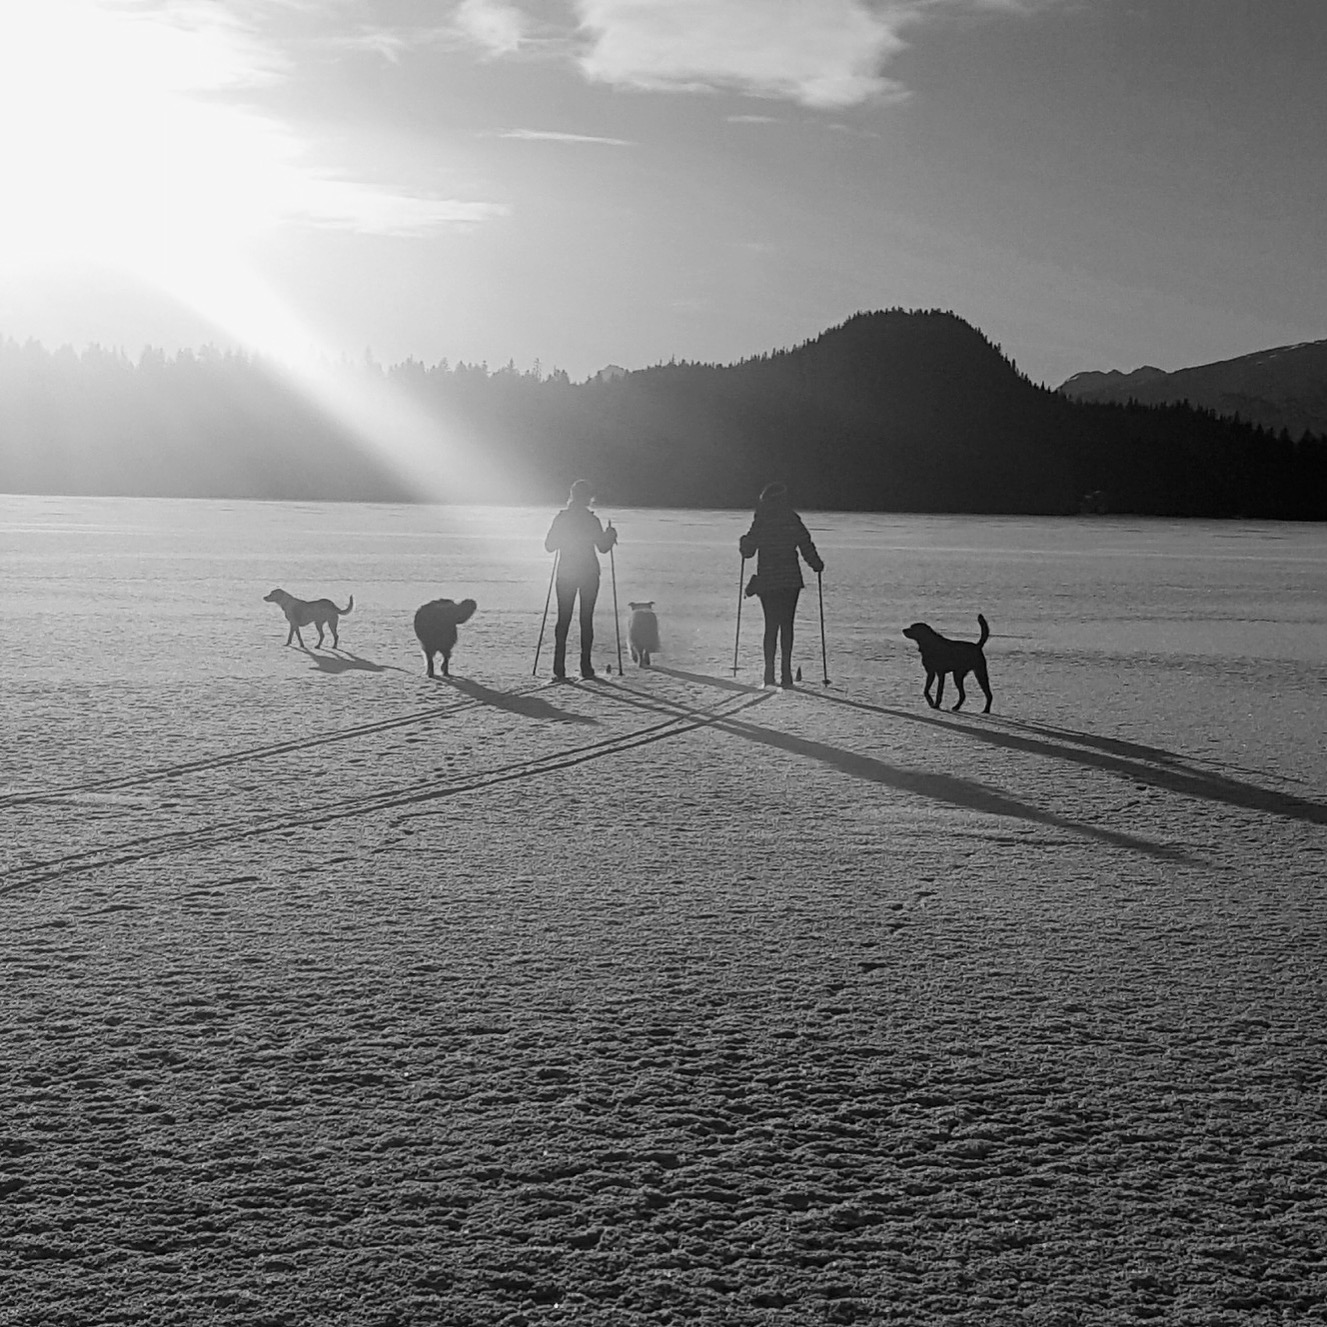 COLLABORATION - We're better together. There's magic in shared vision and ideas. A flexible, inclusive approach consistently results in a deliverable that is larger than its parts.